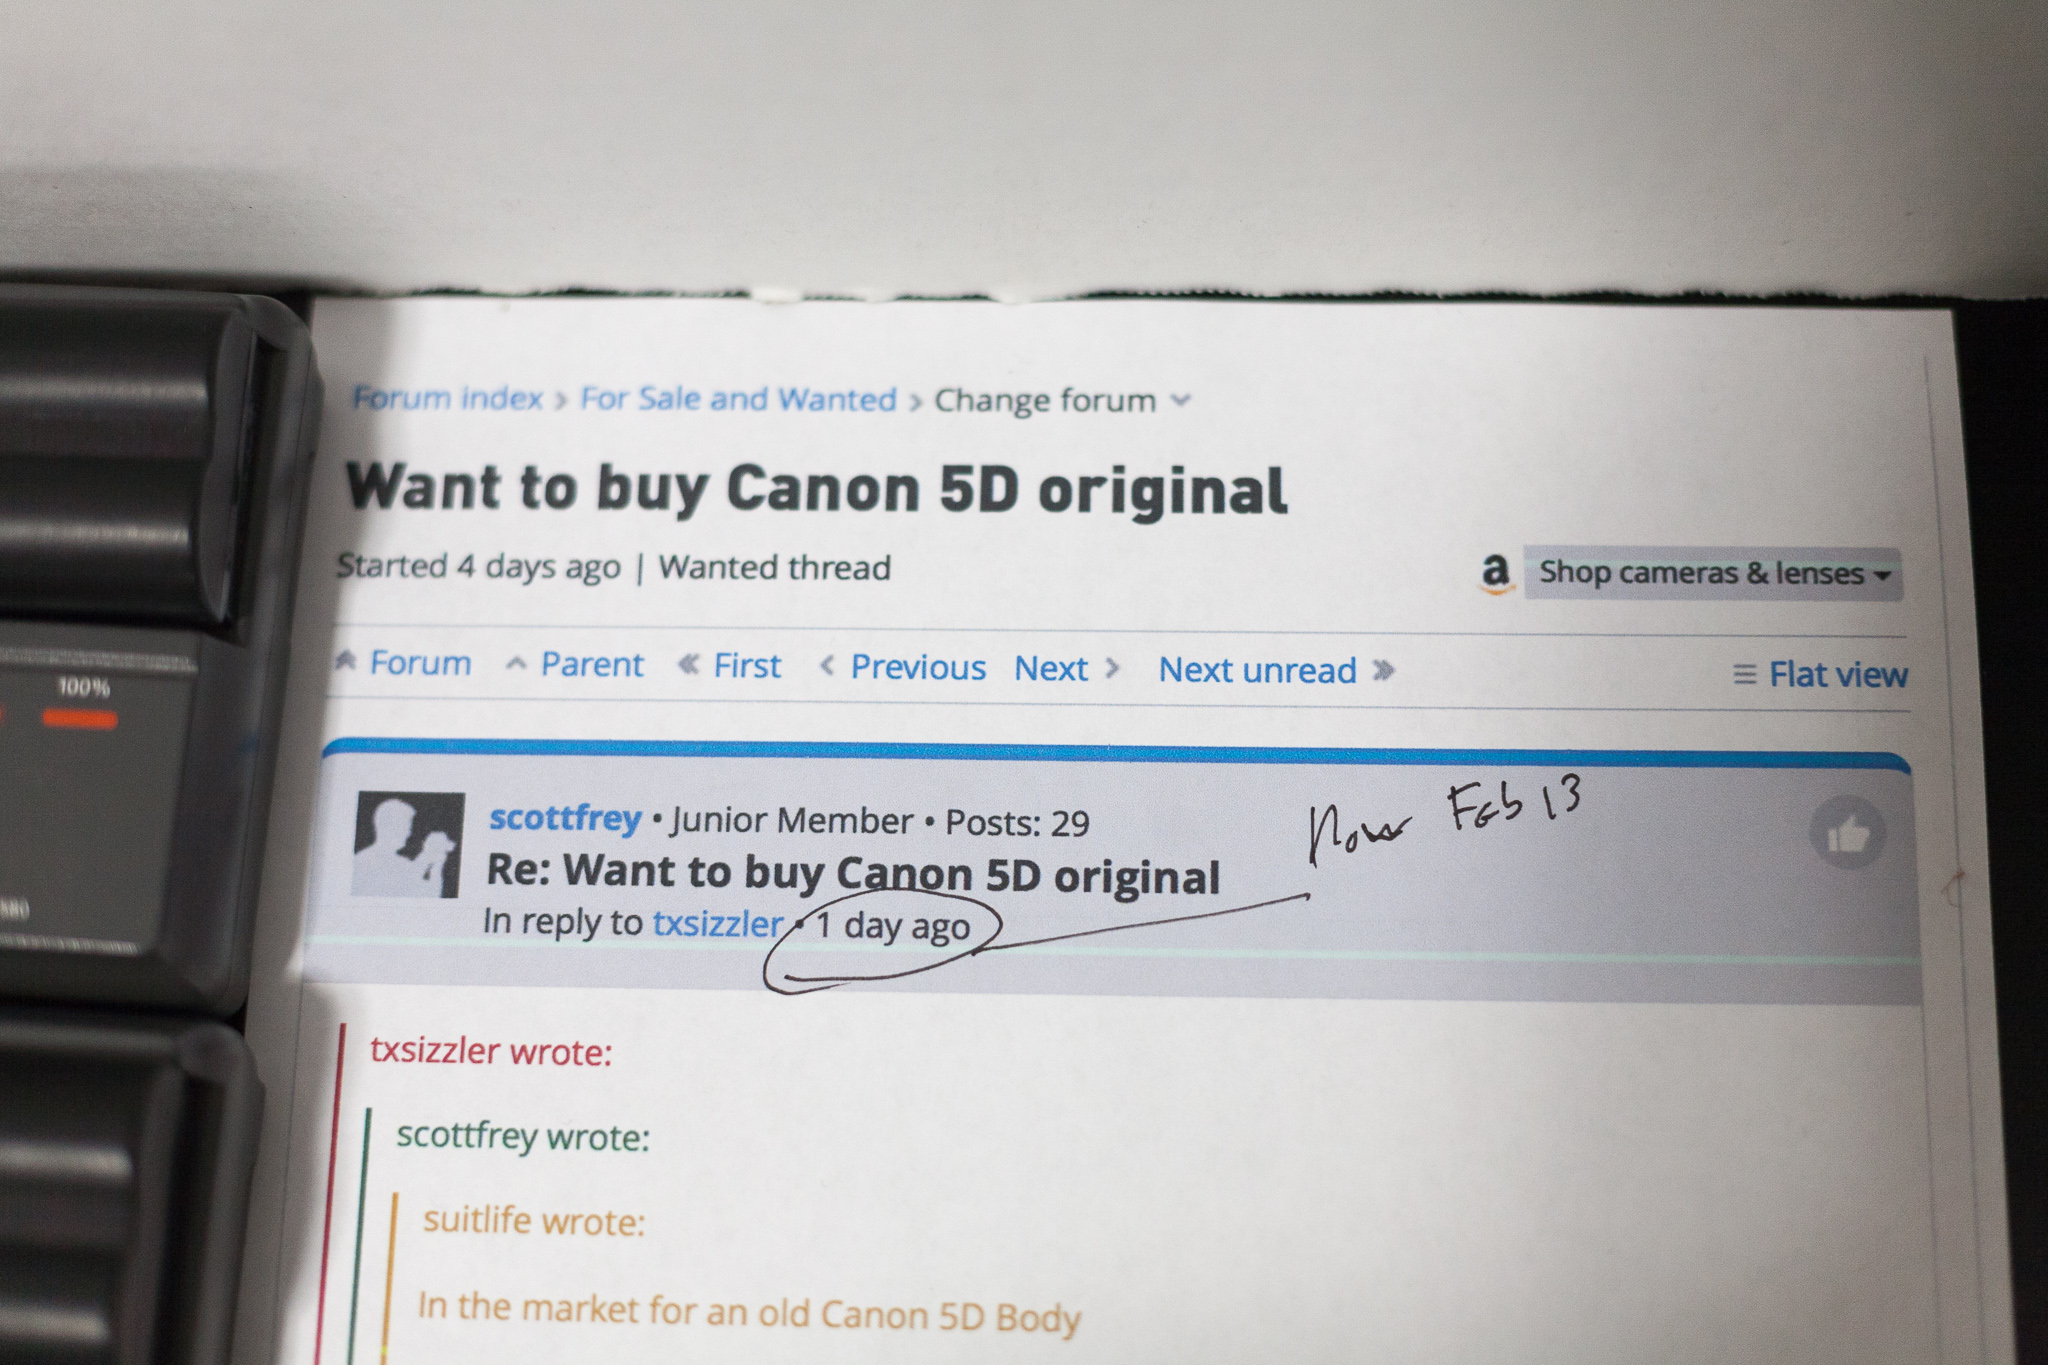 Re: Want to buy Canon 5D original: For Sale and Wanted Forum